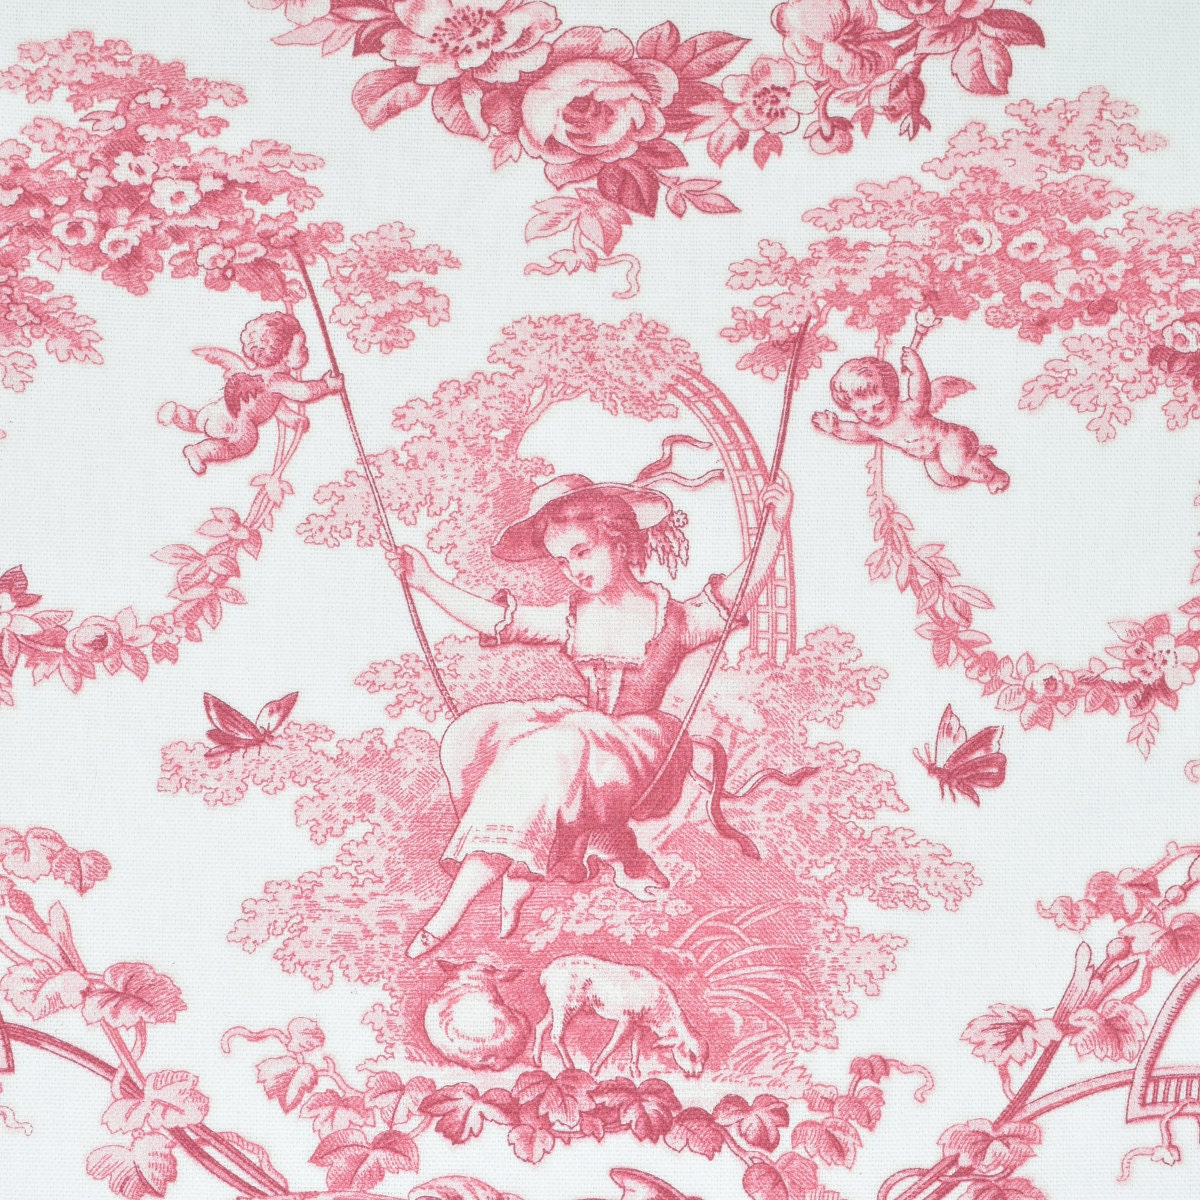 French Home Decor Fabric Toile de Jouy Cotton by meter Width 110